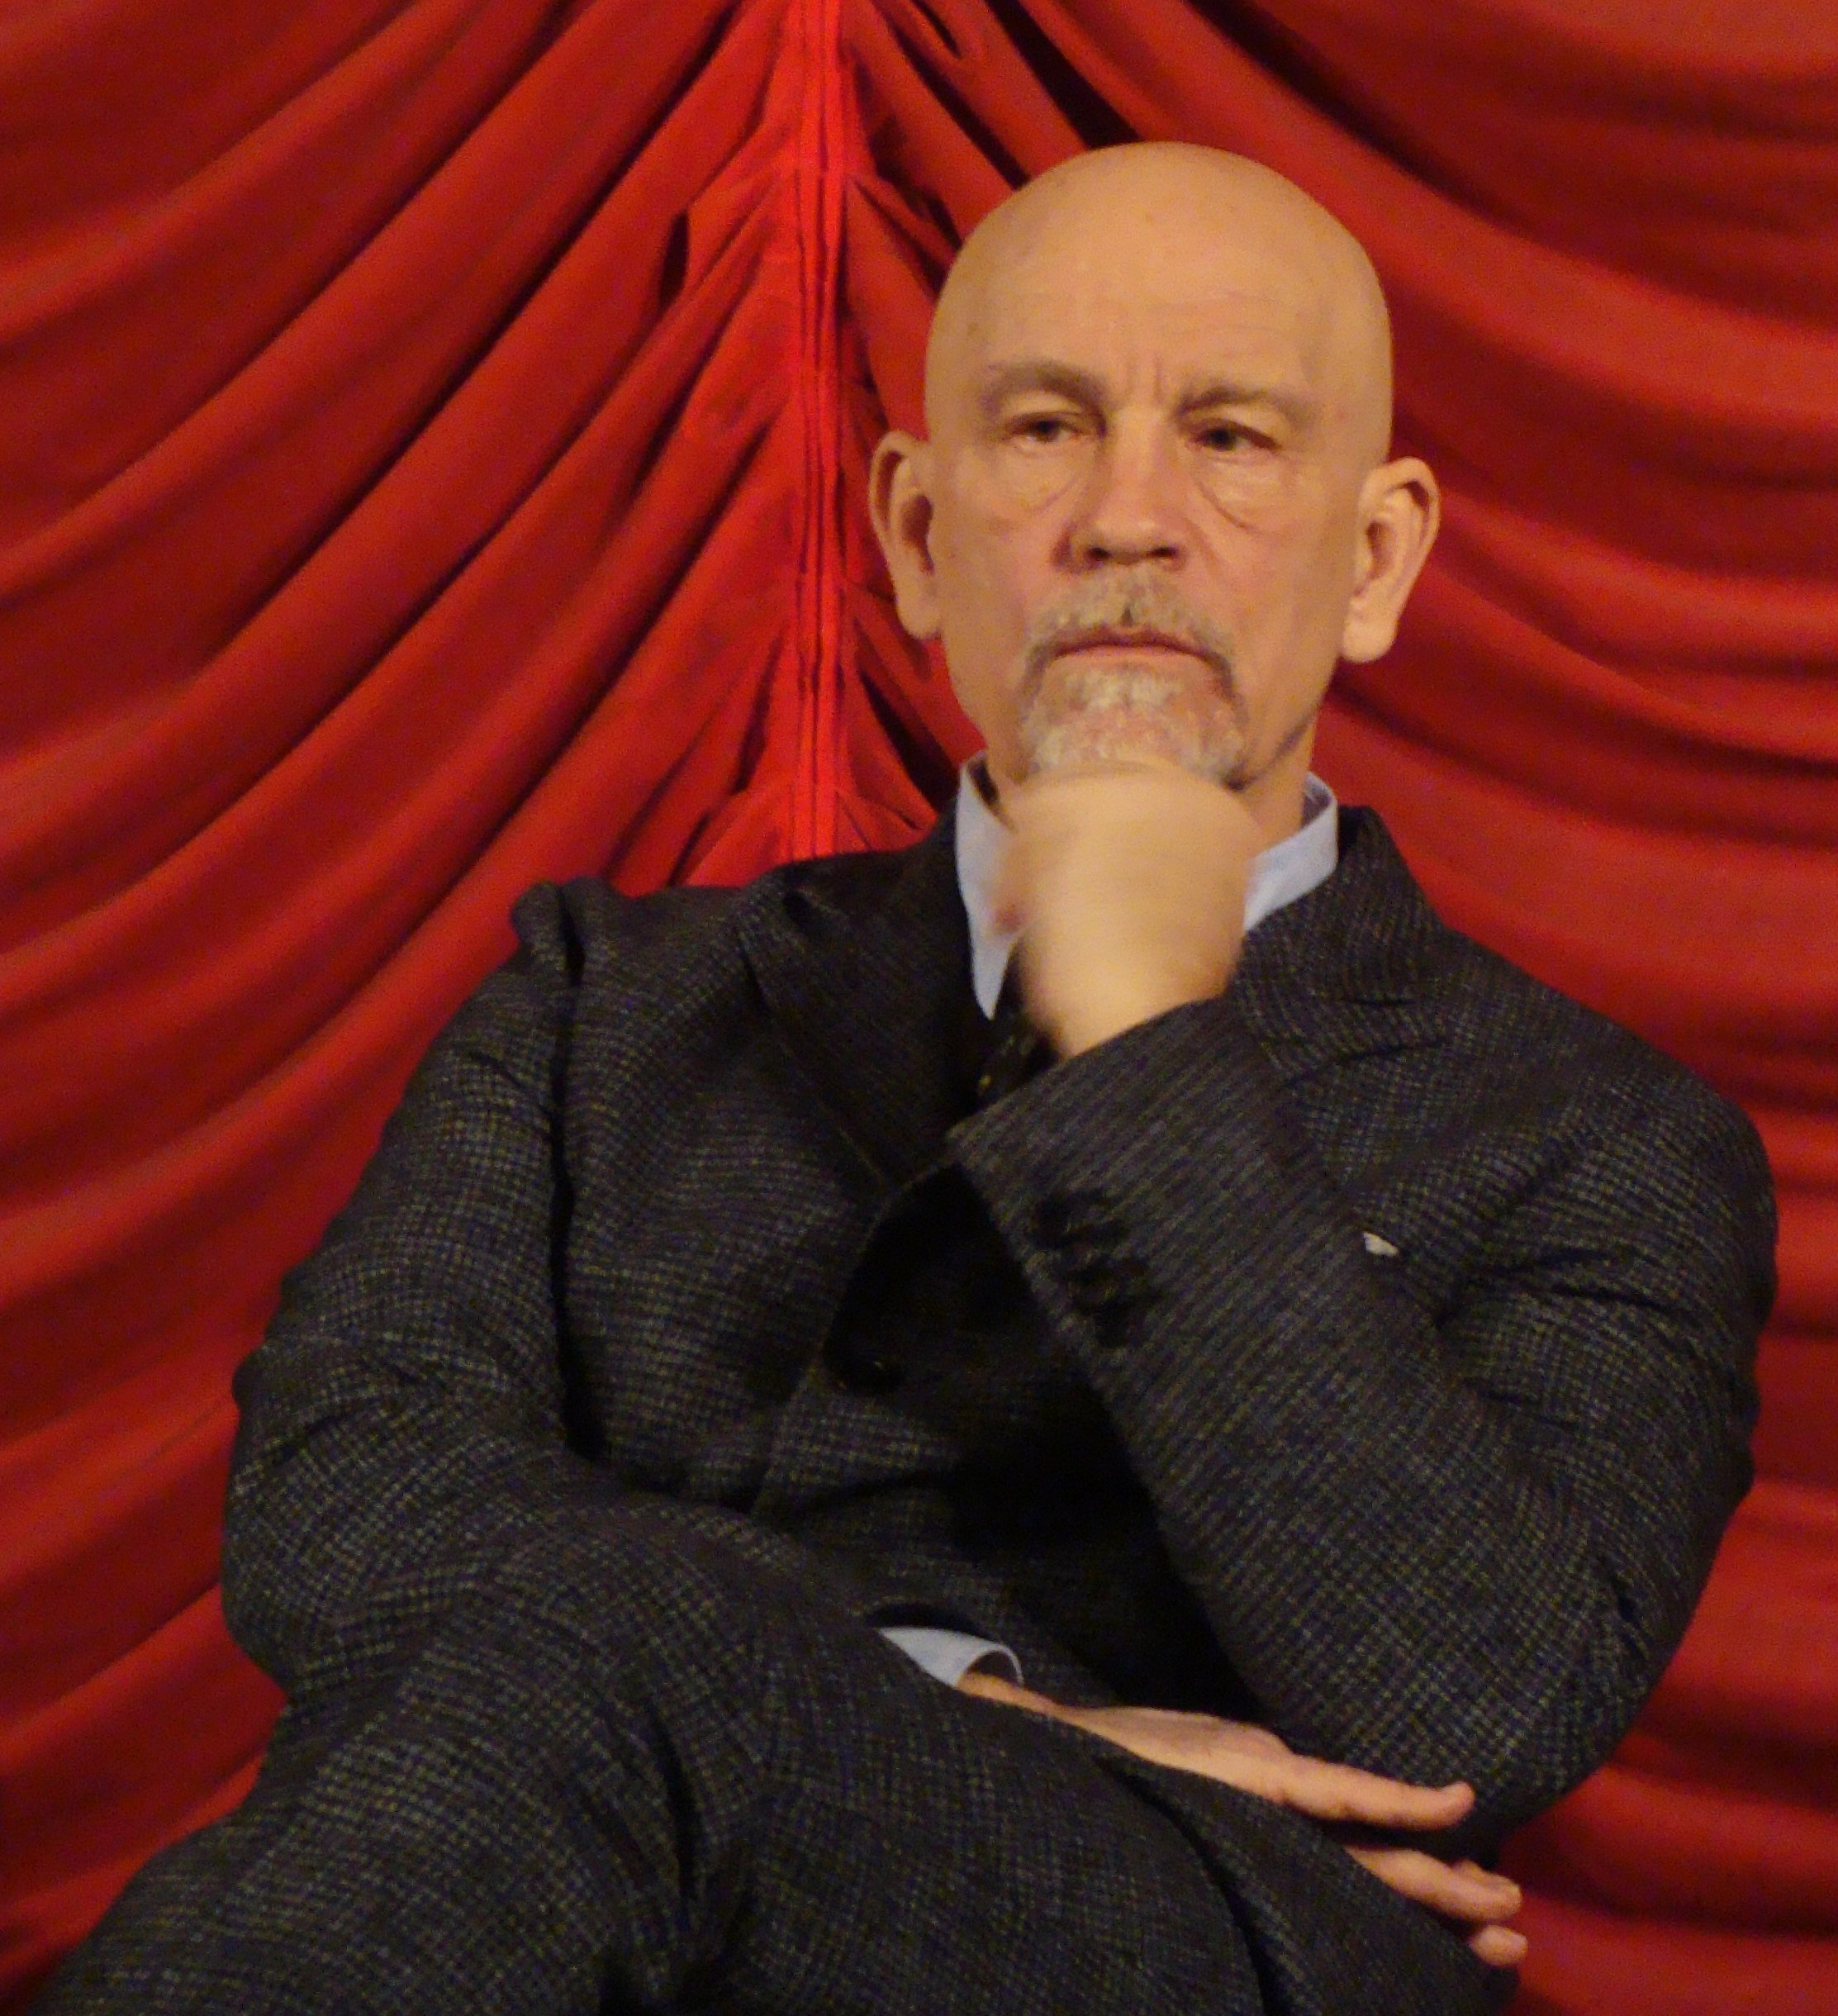 John Malkovich at a screening of Casanova Variations in January 2015 1 27 Things You Didn't Know About The Spider-Man Films